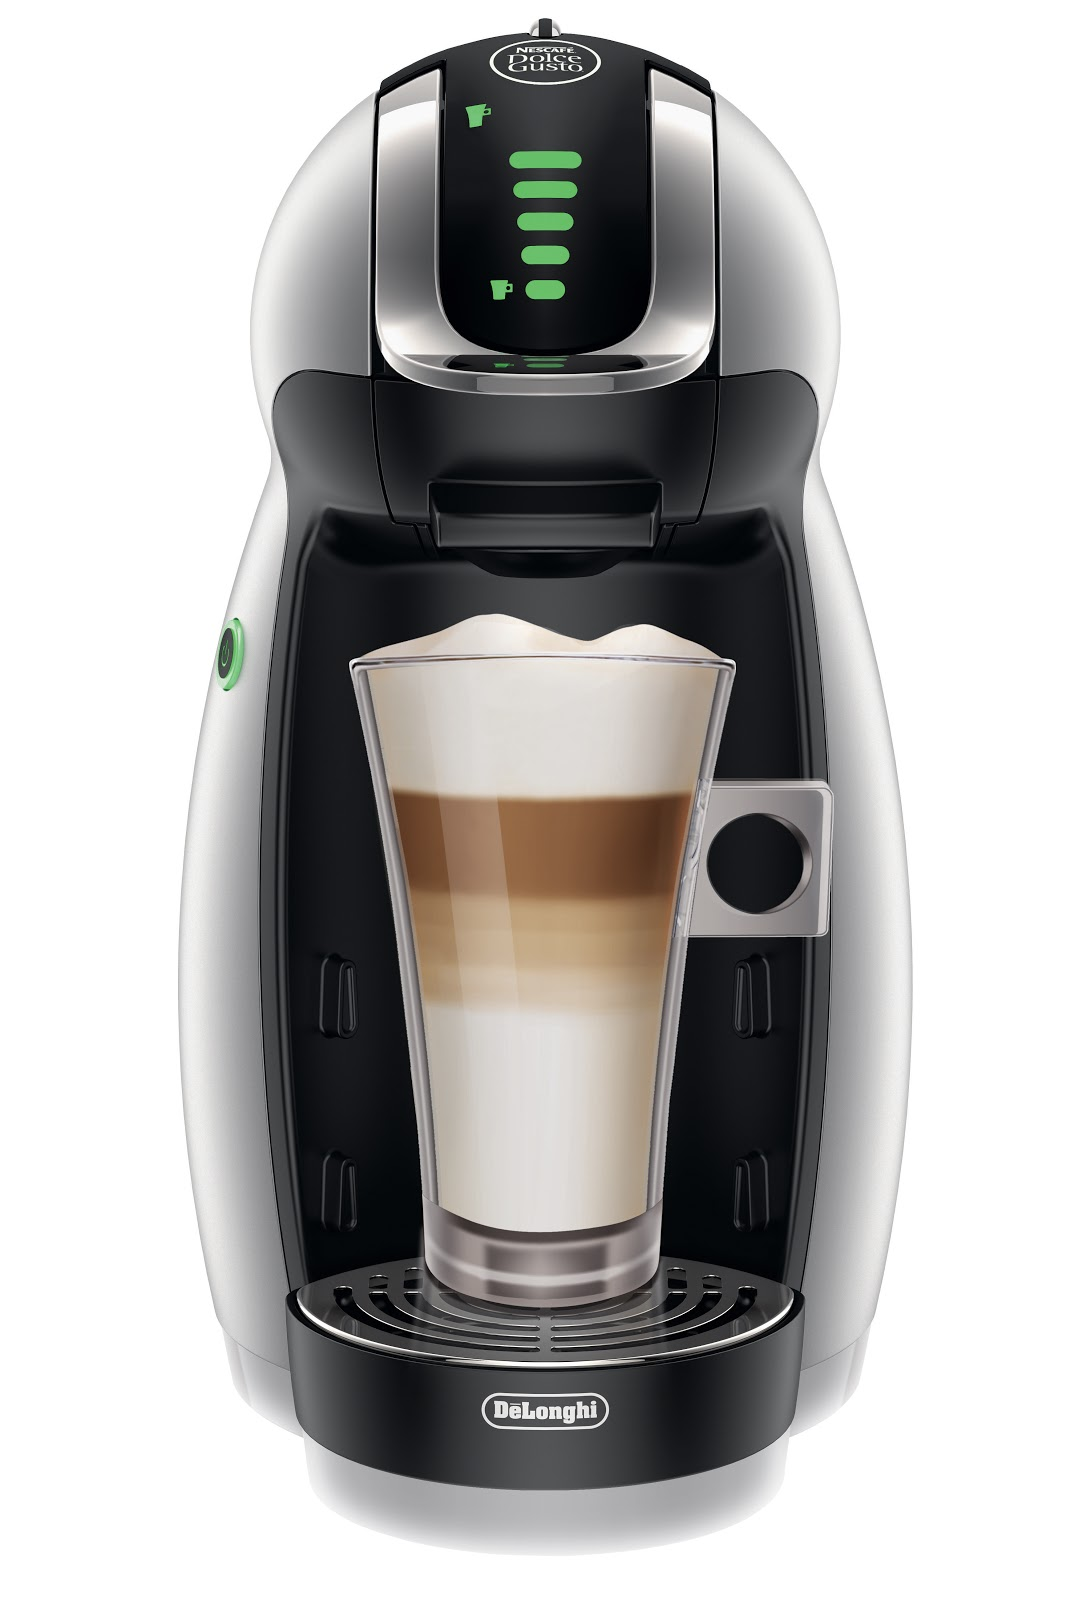 Nescafe Dolce Gusto - Genio Coffee Machine